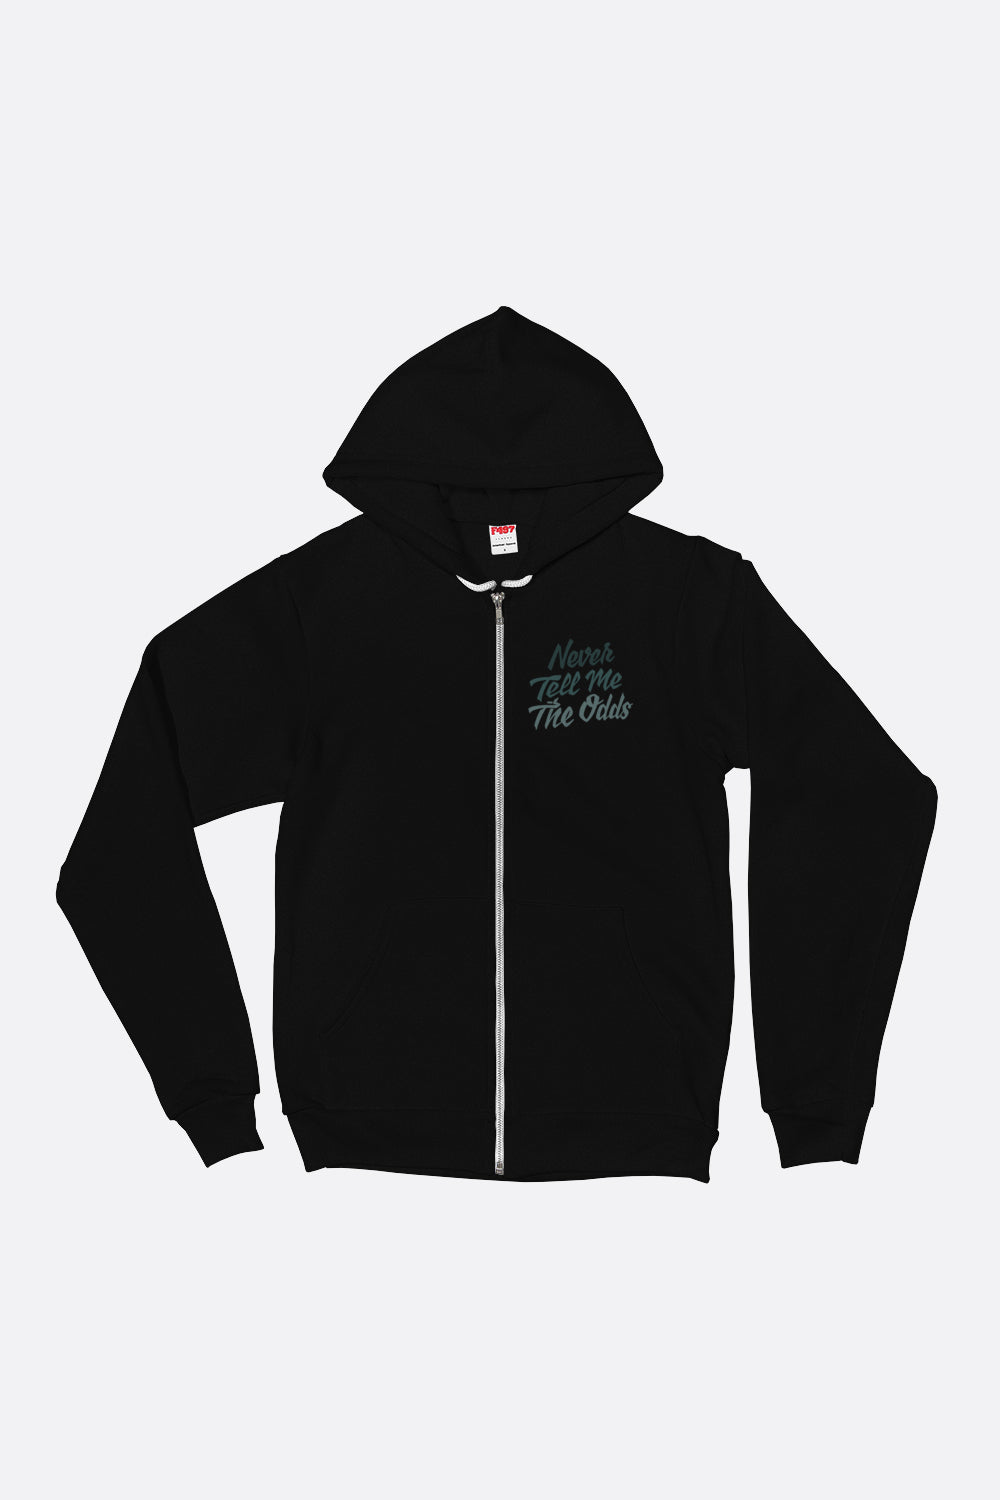 Never Tell Me the Odds Zip Up Hoodie